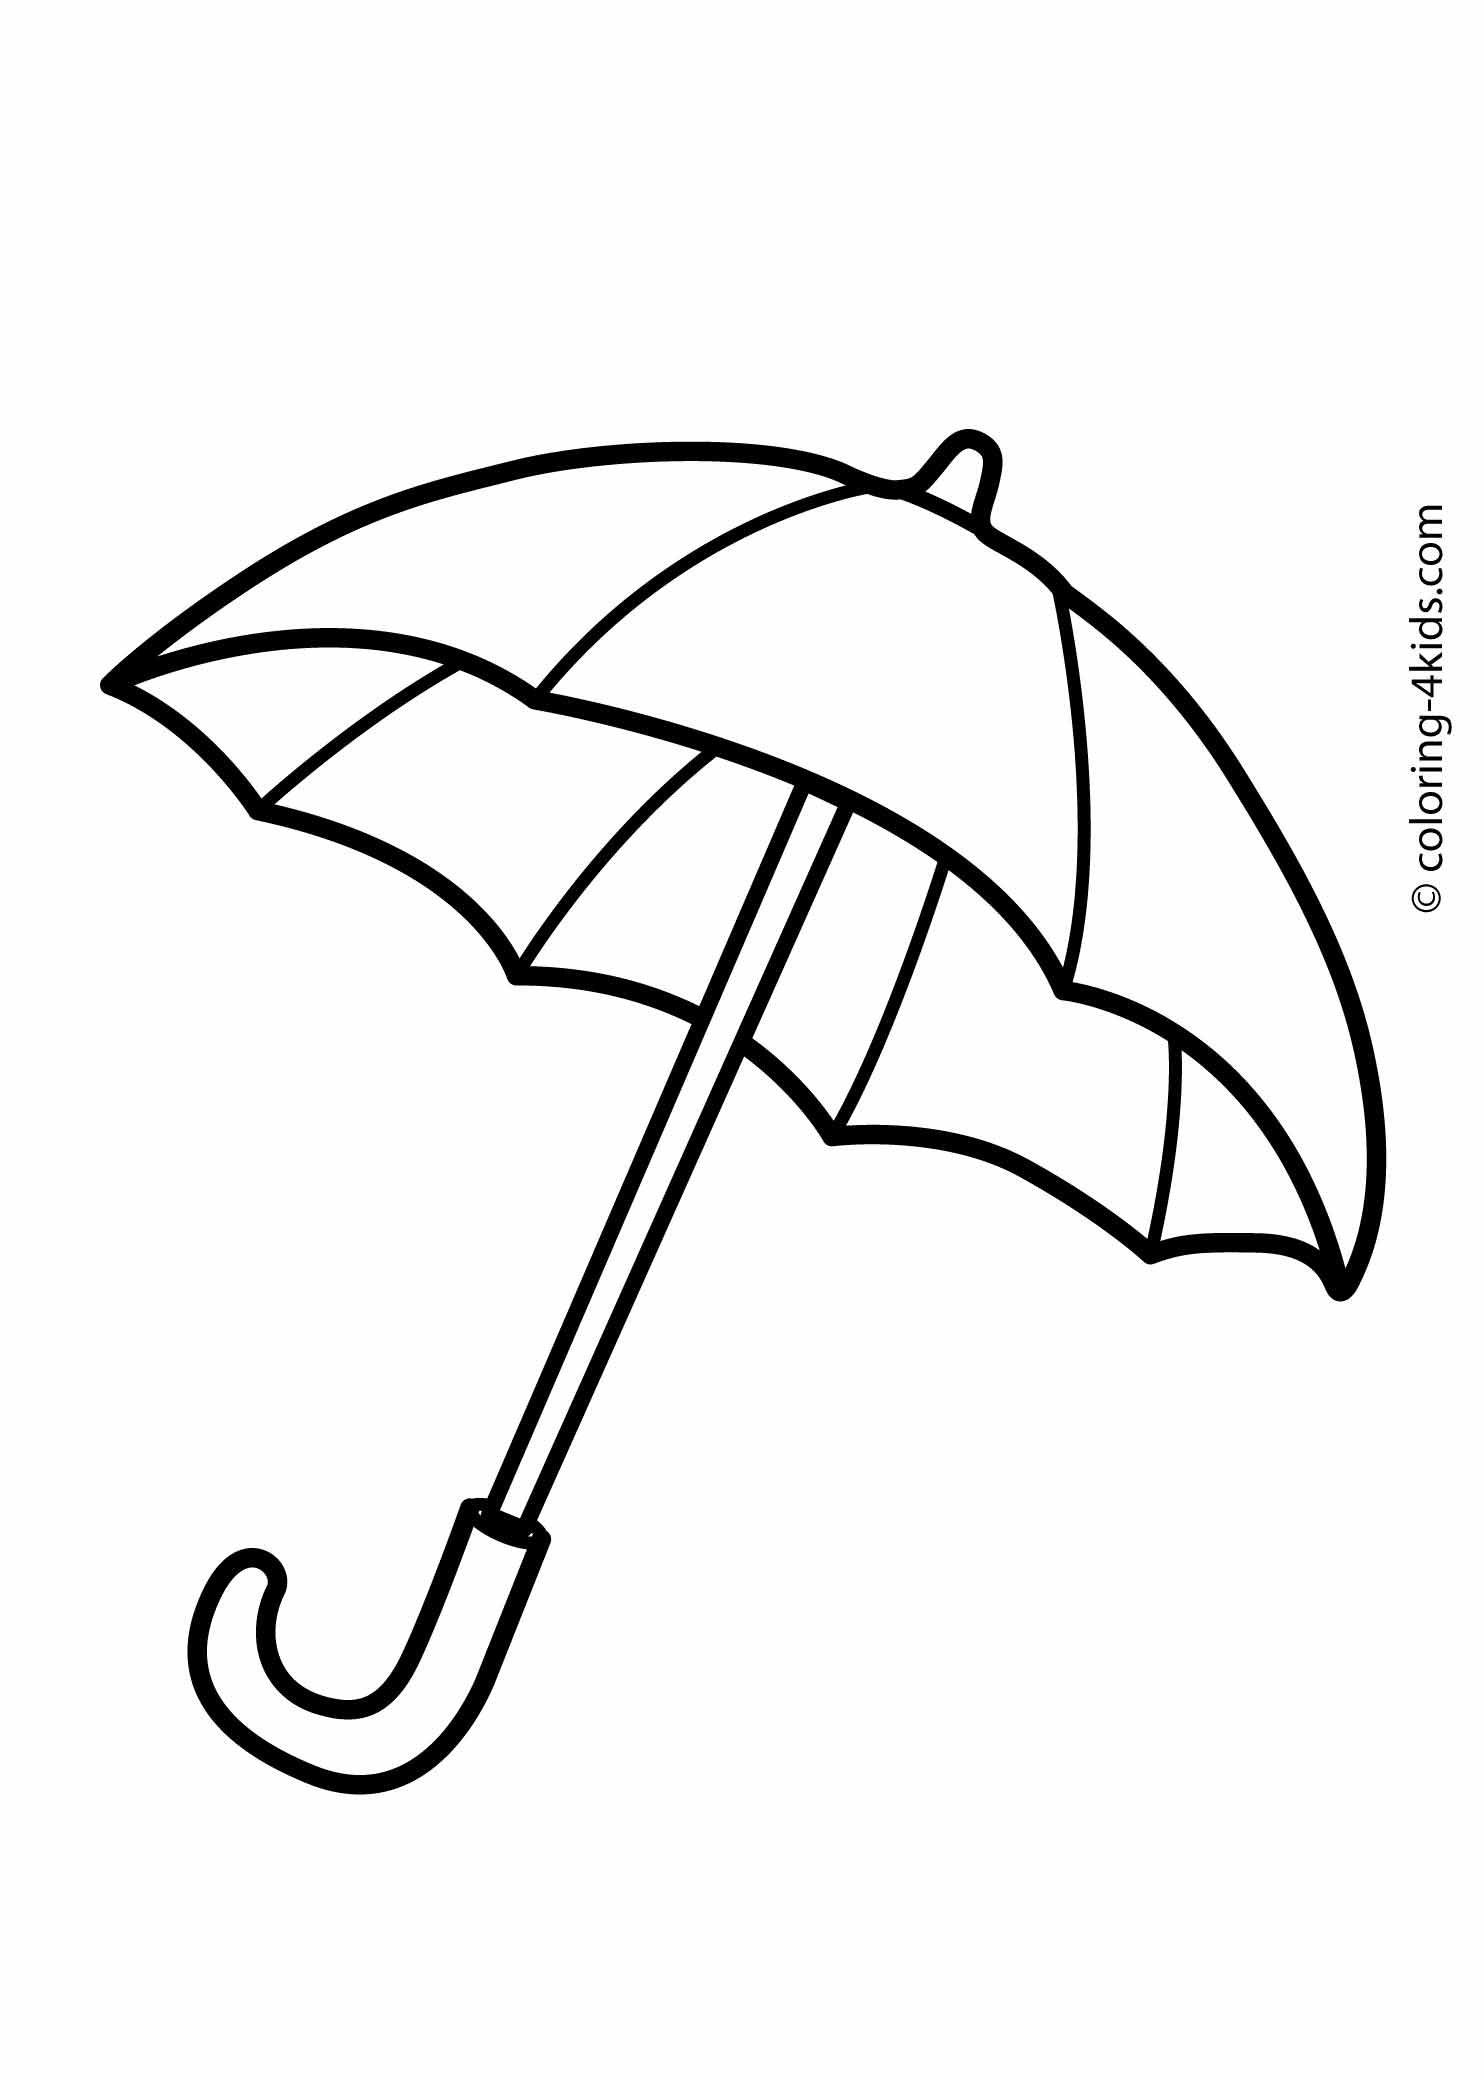 Umbrella Coloring Pages For Kids Printable Drawing Varitys